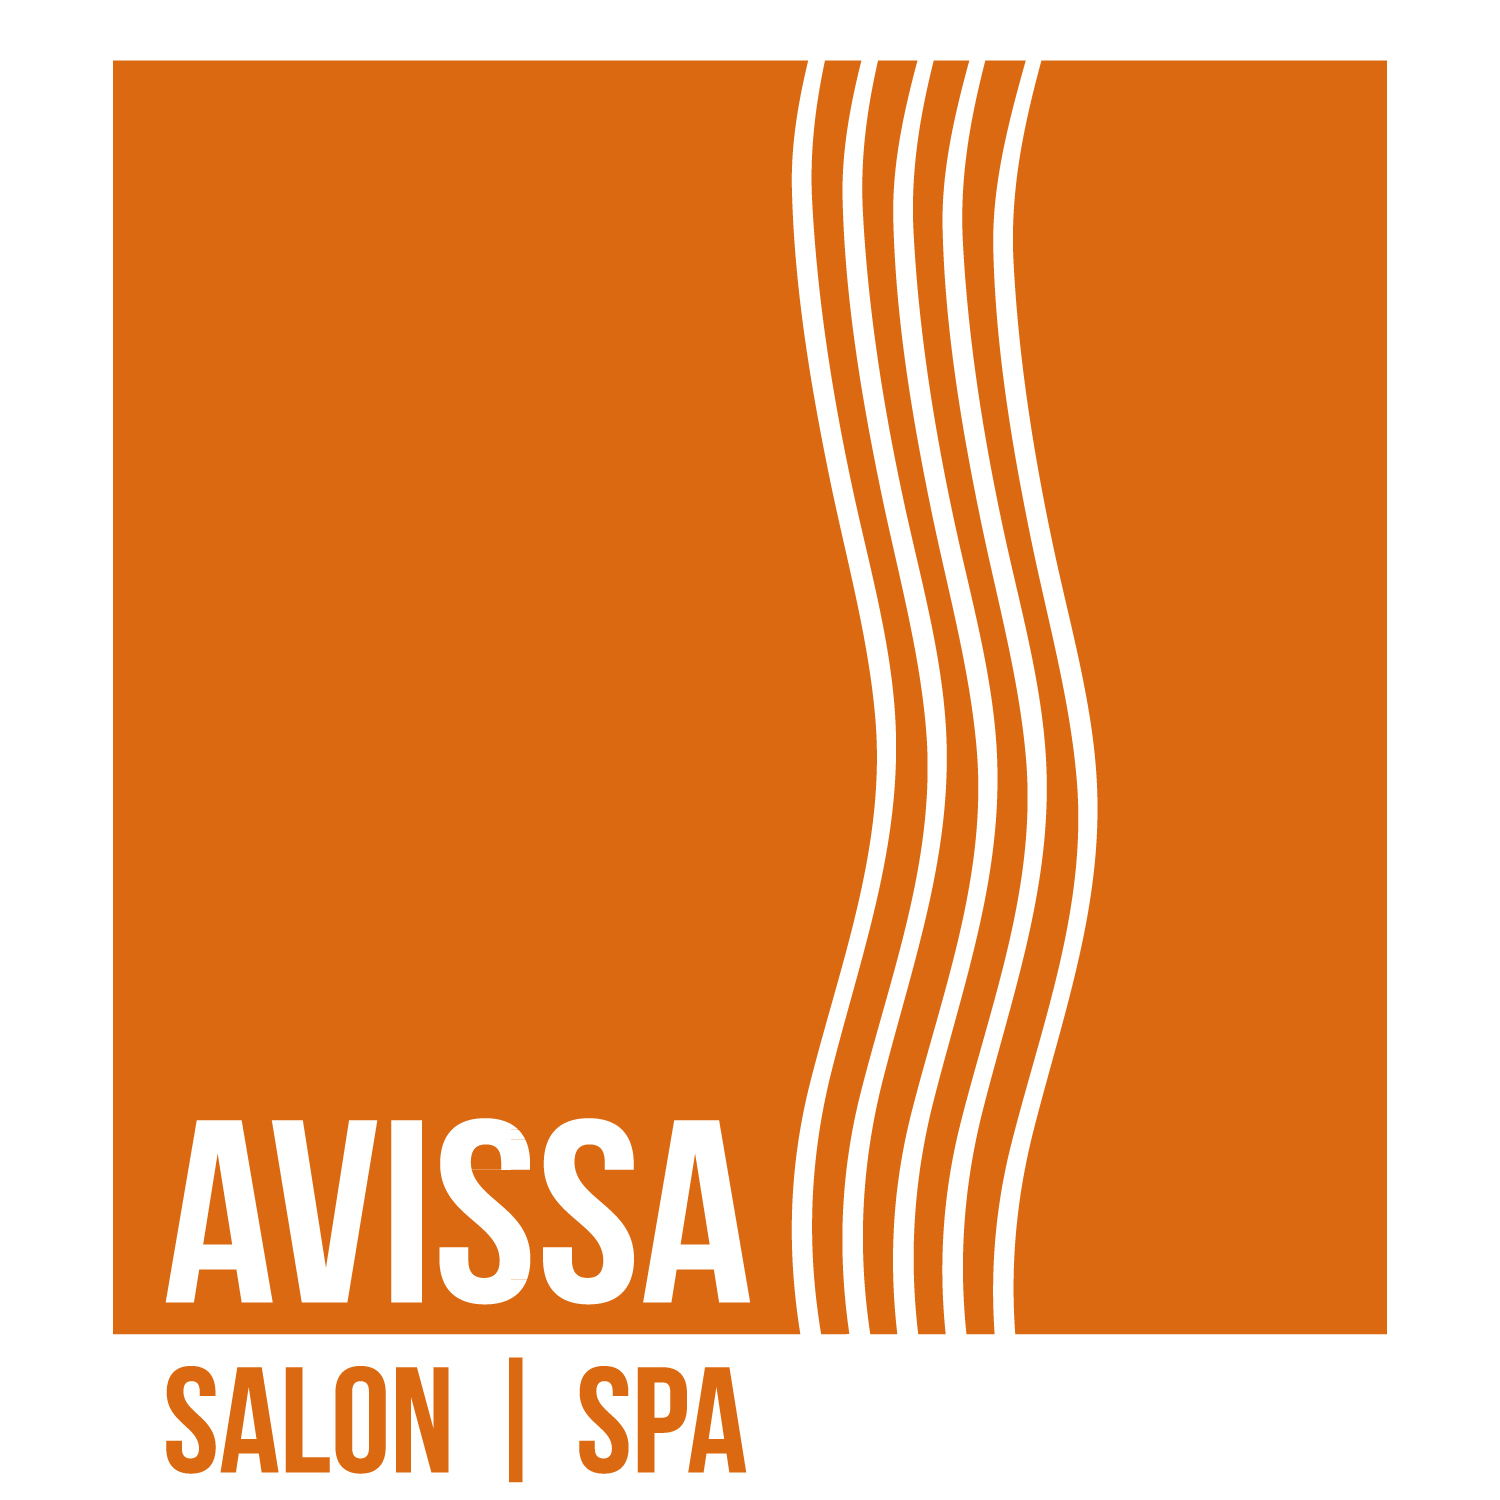 Avissa Salon|Spa